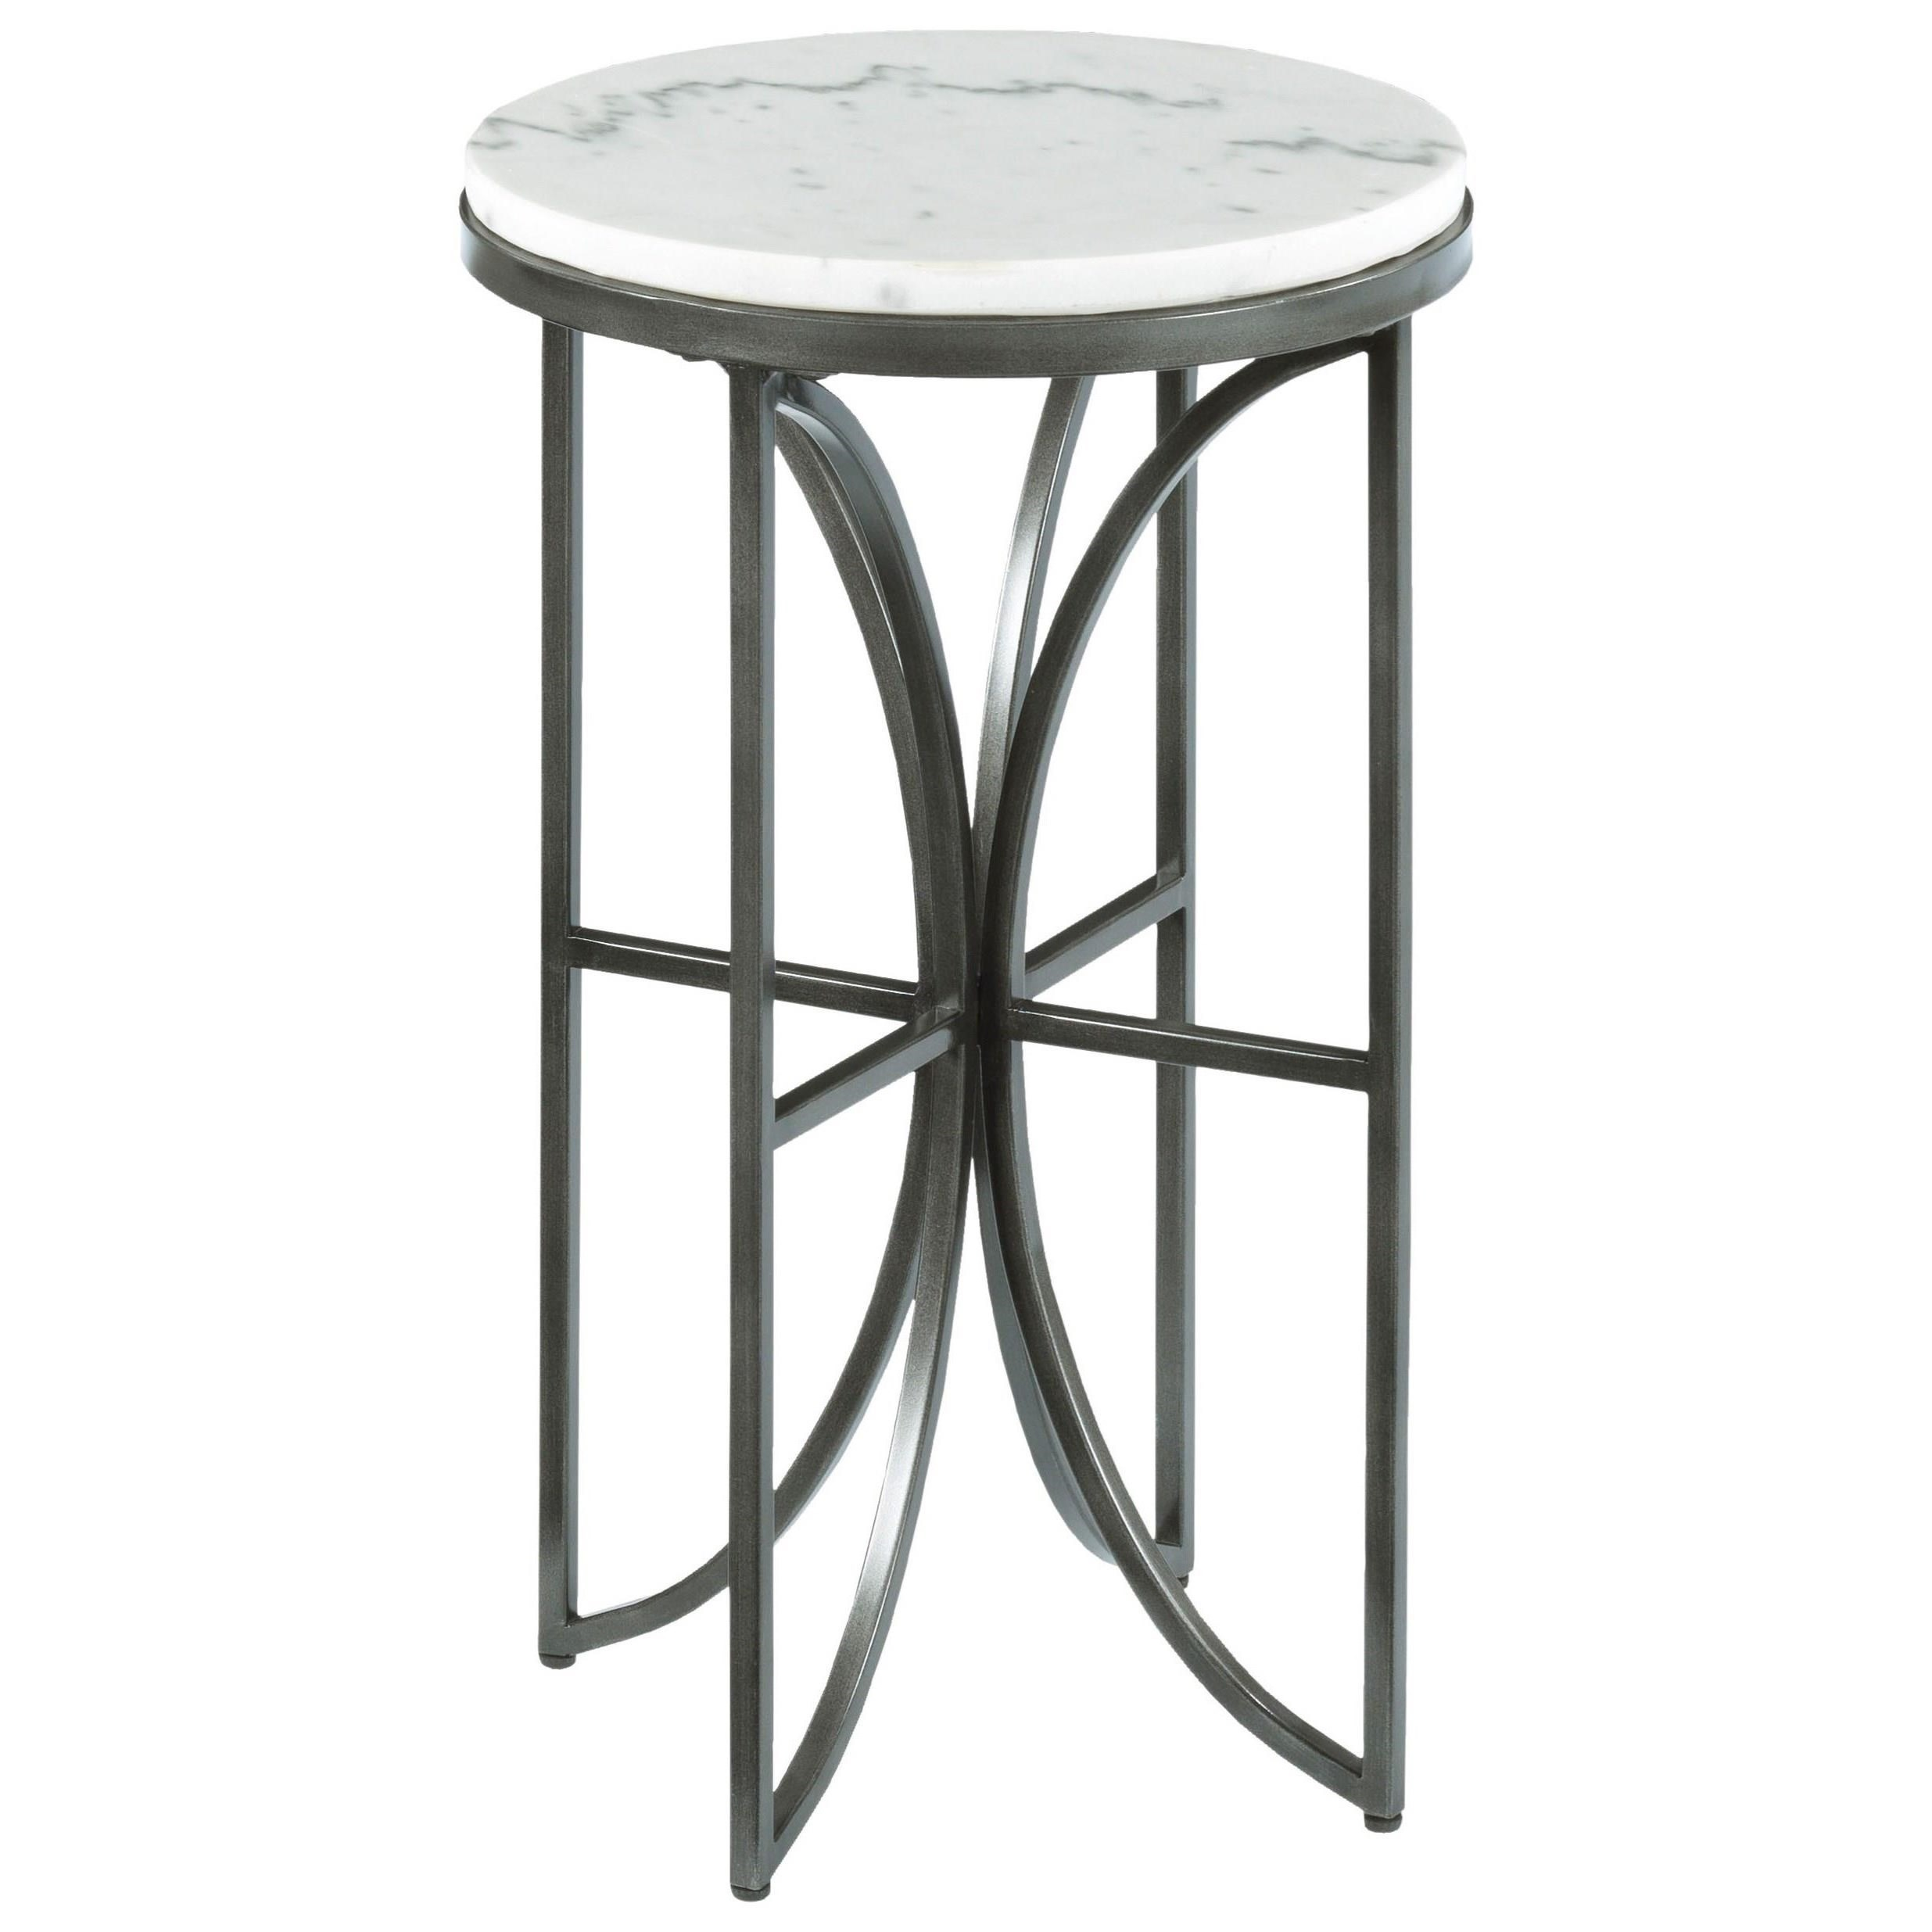 hammary impact small round accent table with marble top wayside products color black stackable snack tables pool umbrellas bunnings white circle end reclaimed wood pub mirror wine